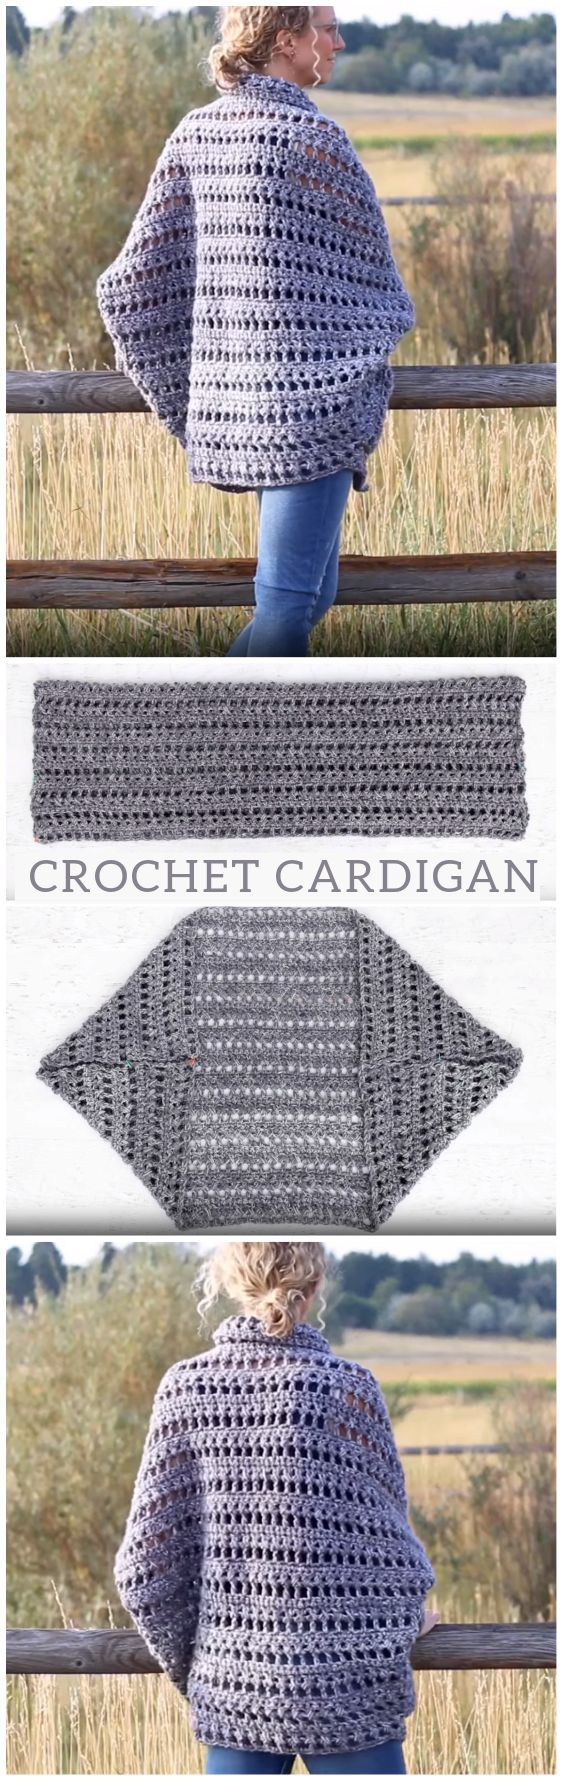 CrochetPatterns CrochetPatterns Crochet Cardigan Tutorial is one of the rarest free video tutorial available on the internet market. We share this step by step guided video tutorial absolutely free for our users. Skills needed include double crochet and post stitches, although if…Read More » #internetmarketingforbeginners